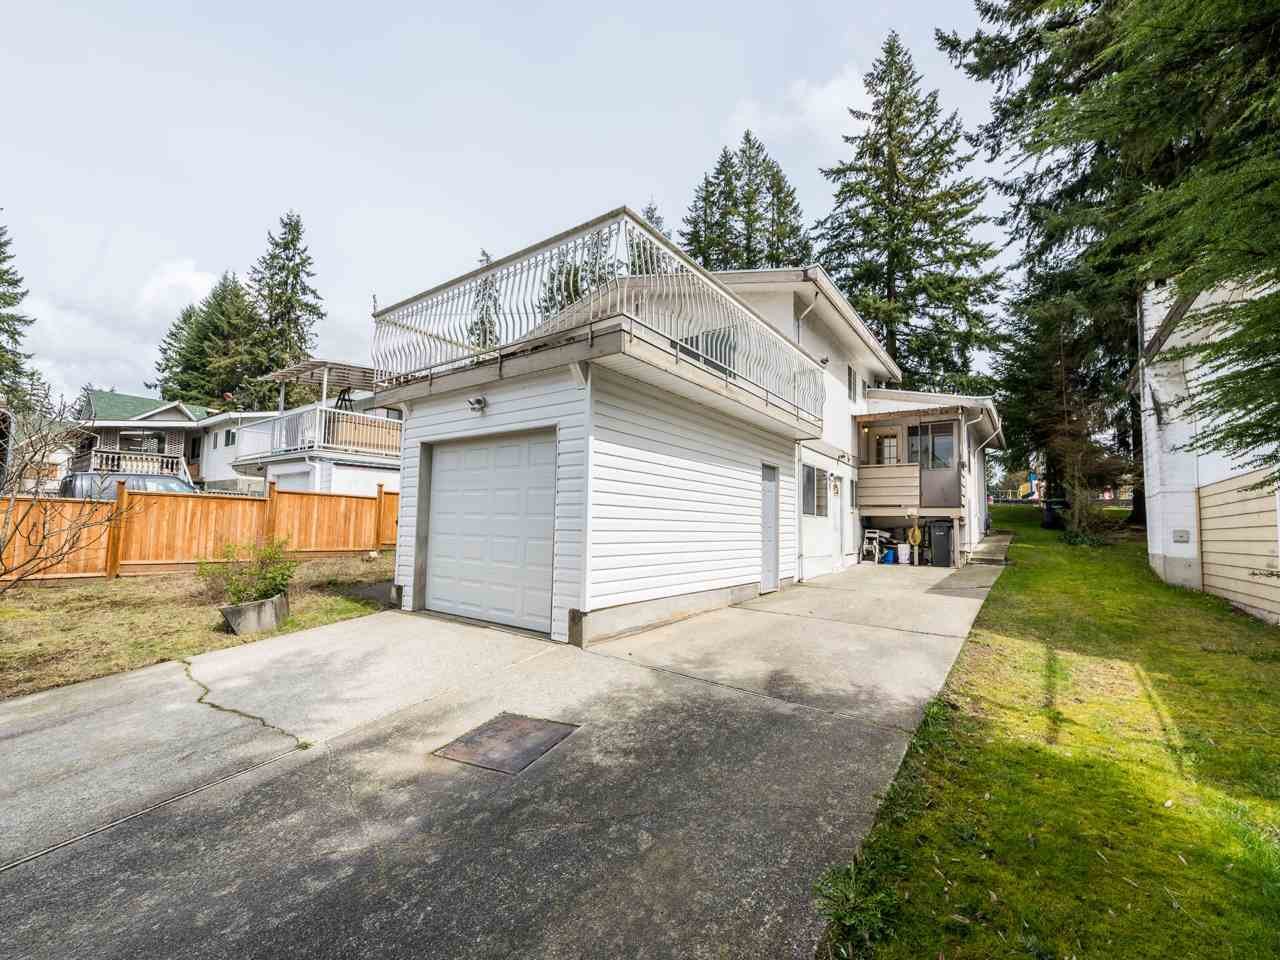 Main Photo: 686 ROBINSON Street in Coquitlam: Coquitlam West House for sale : MLS®# R2283537